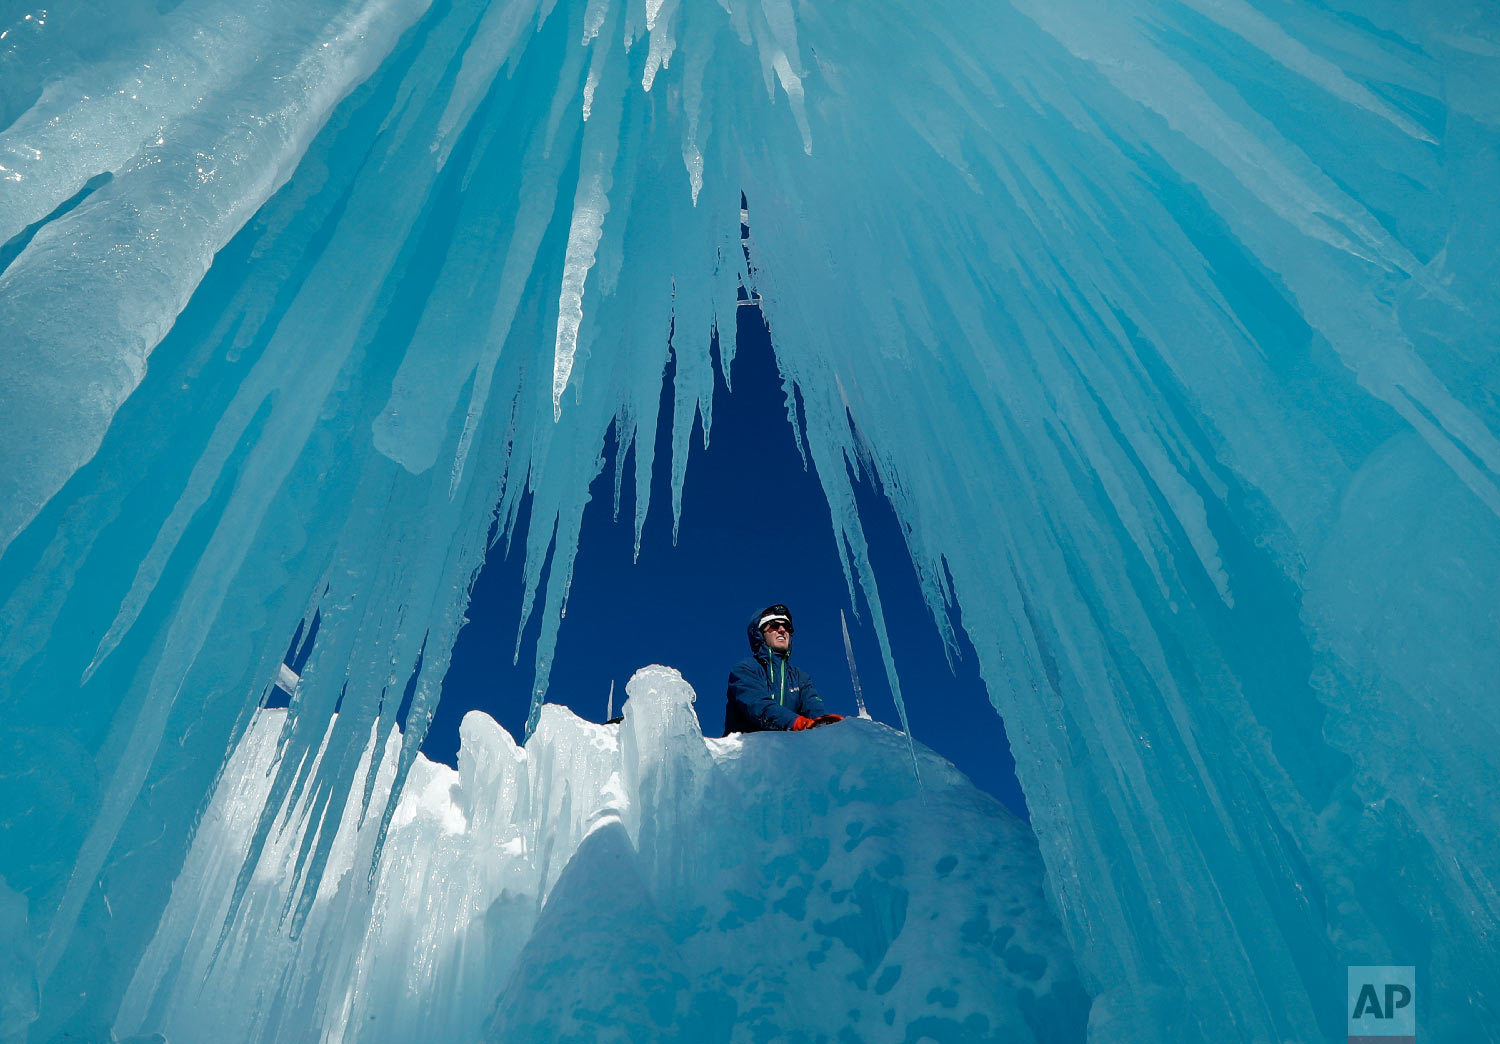 Matt Pasciuto places an icicle at the top of a wall at Ice castles in North Woodstock, N.H., on Jan. 28, 2019. (AP Photo/Robert F. Bukaty)